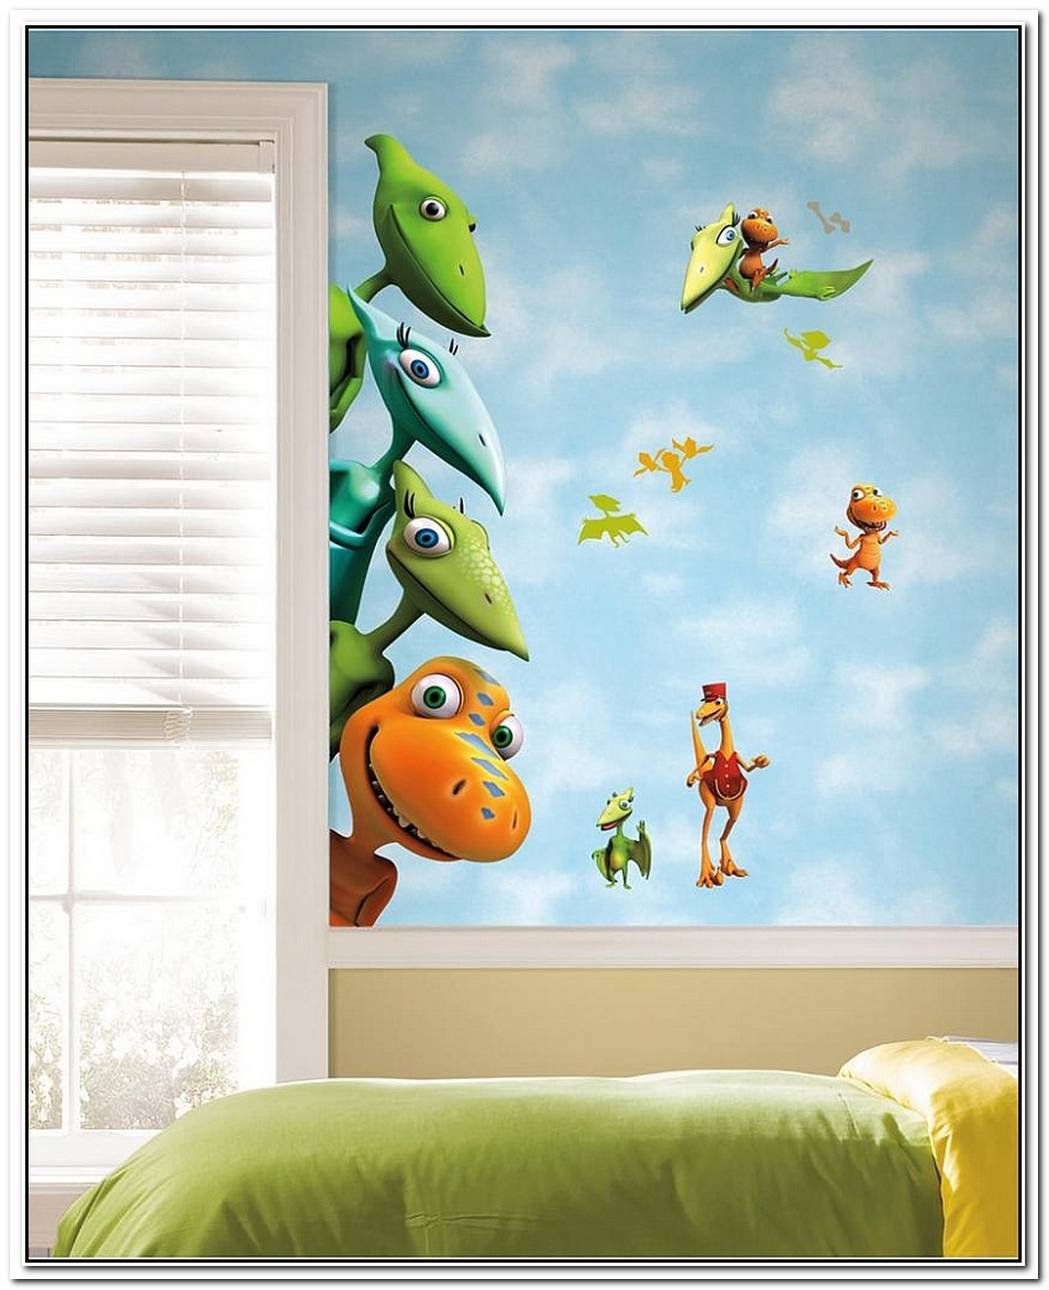 Enliven Your Kids' Bedroom With DinosaurThemed Wall Art And Murals